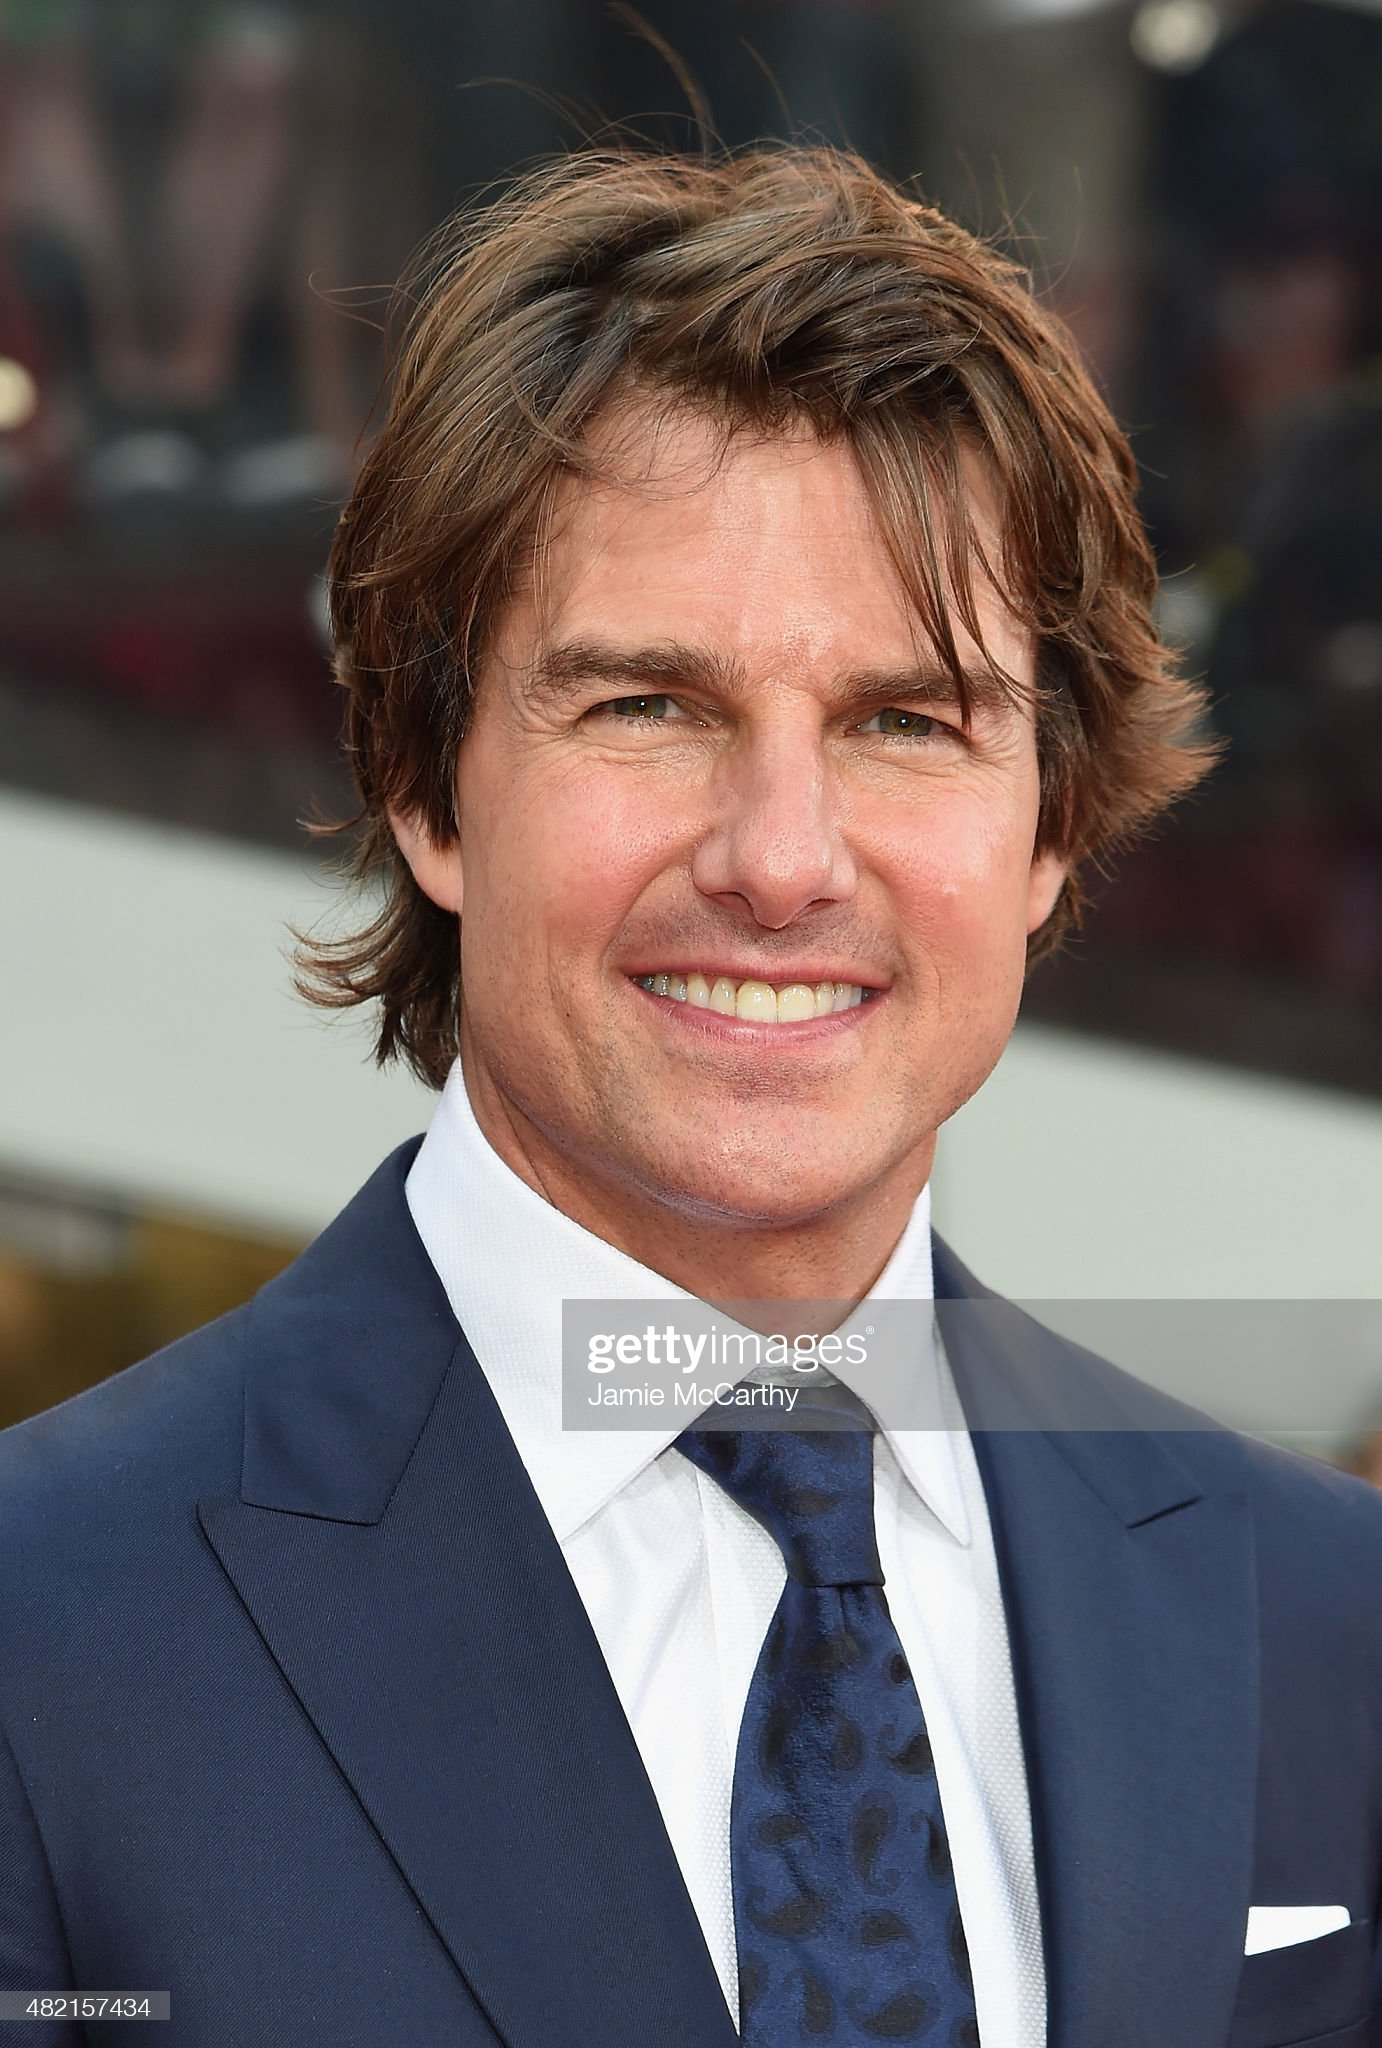 Tom Cruise (Galería de fotos) Actor-tom-cruise-attends-the-mission-impossible-rogue-nation-new-york-picture-id482157434?s=2048x2048